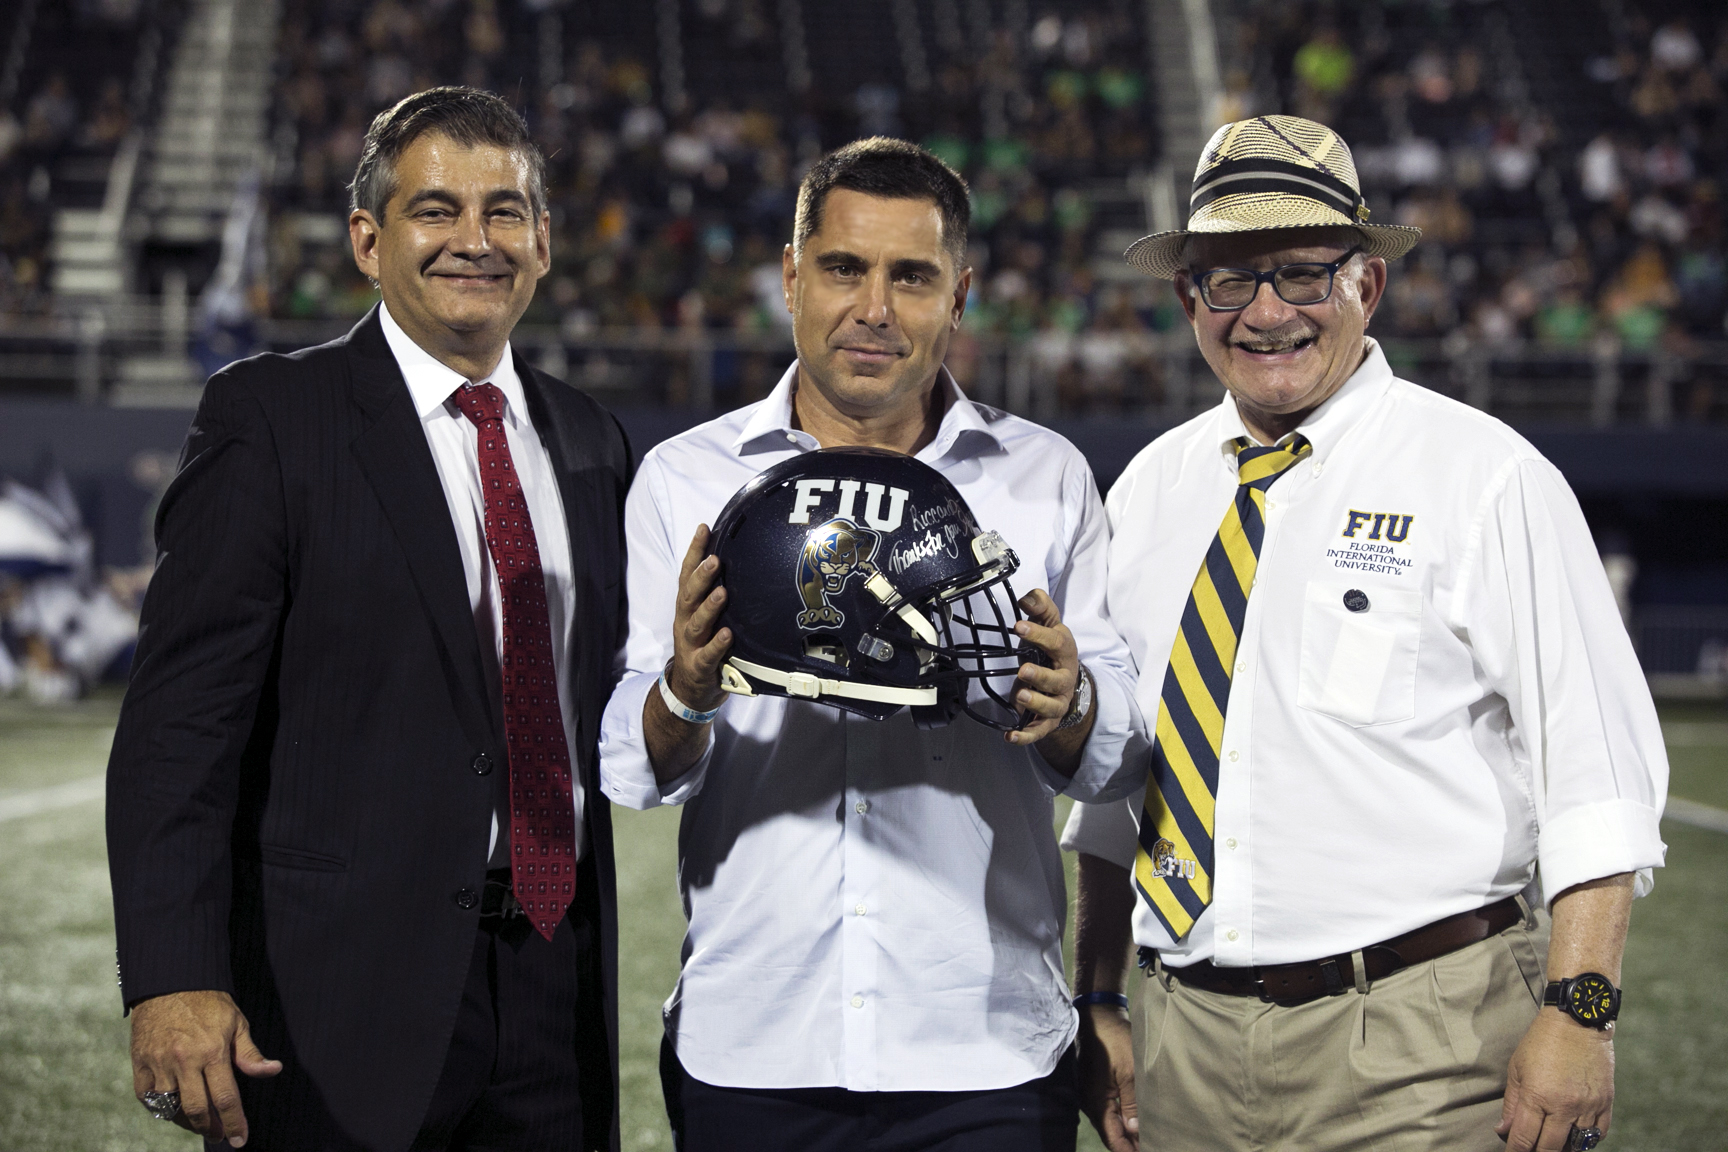 Riccardo Silva being recognised for his continued support for FIU by Pete Garcia, FIU Athletics Department Director and the President of FIU, Mark Rosenberg